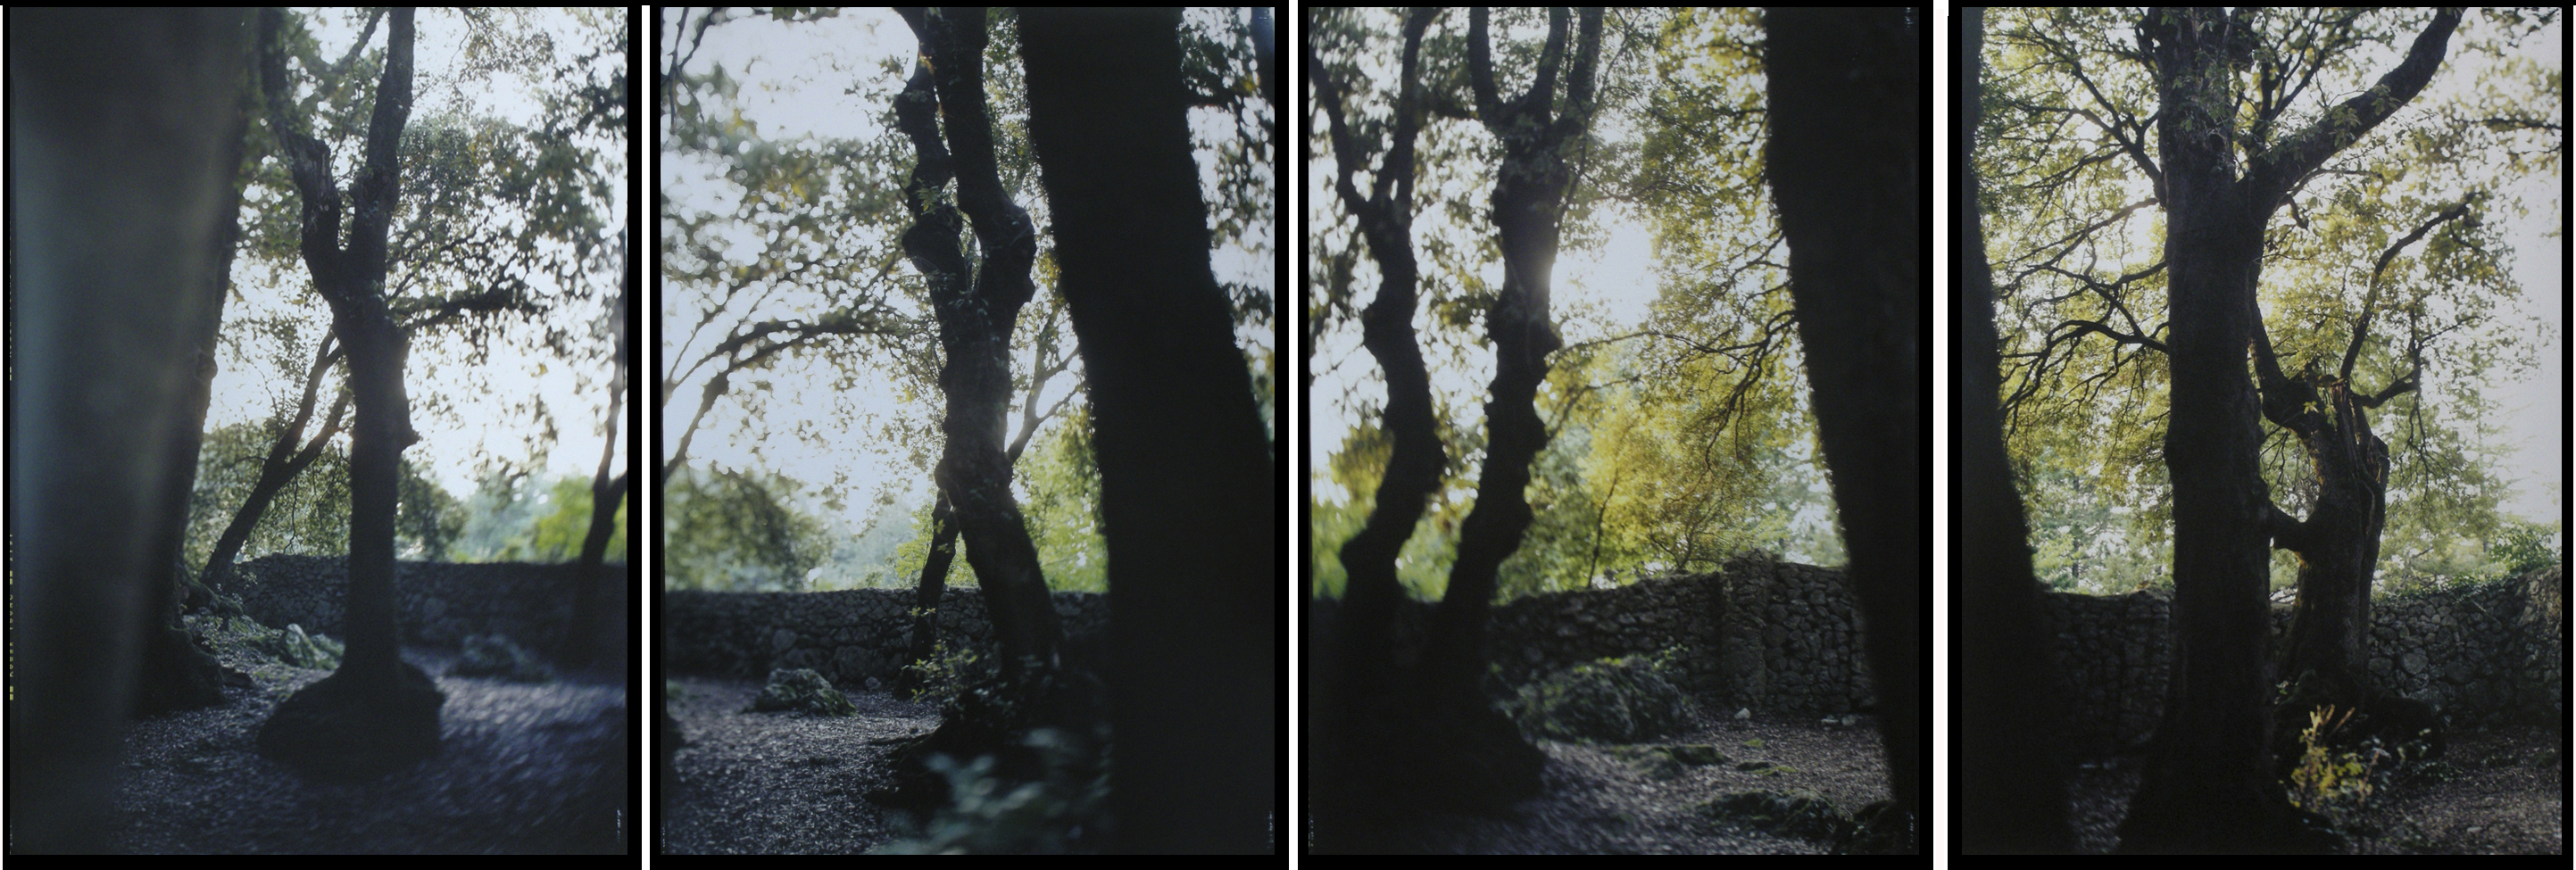 JoAnn Verburg, Four Times Three, 2007, 4 prints, 40 inches x 10 feet, edition of 10, price on request